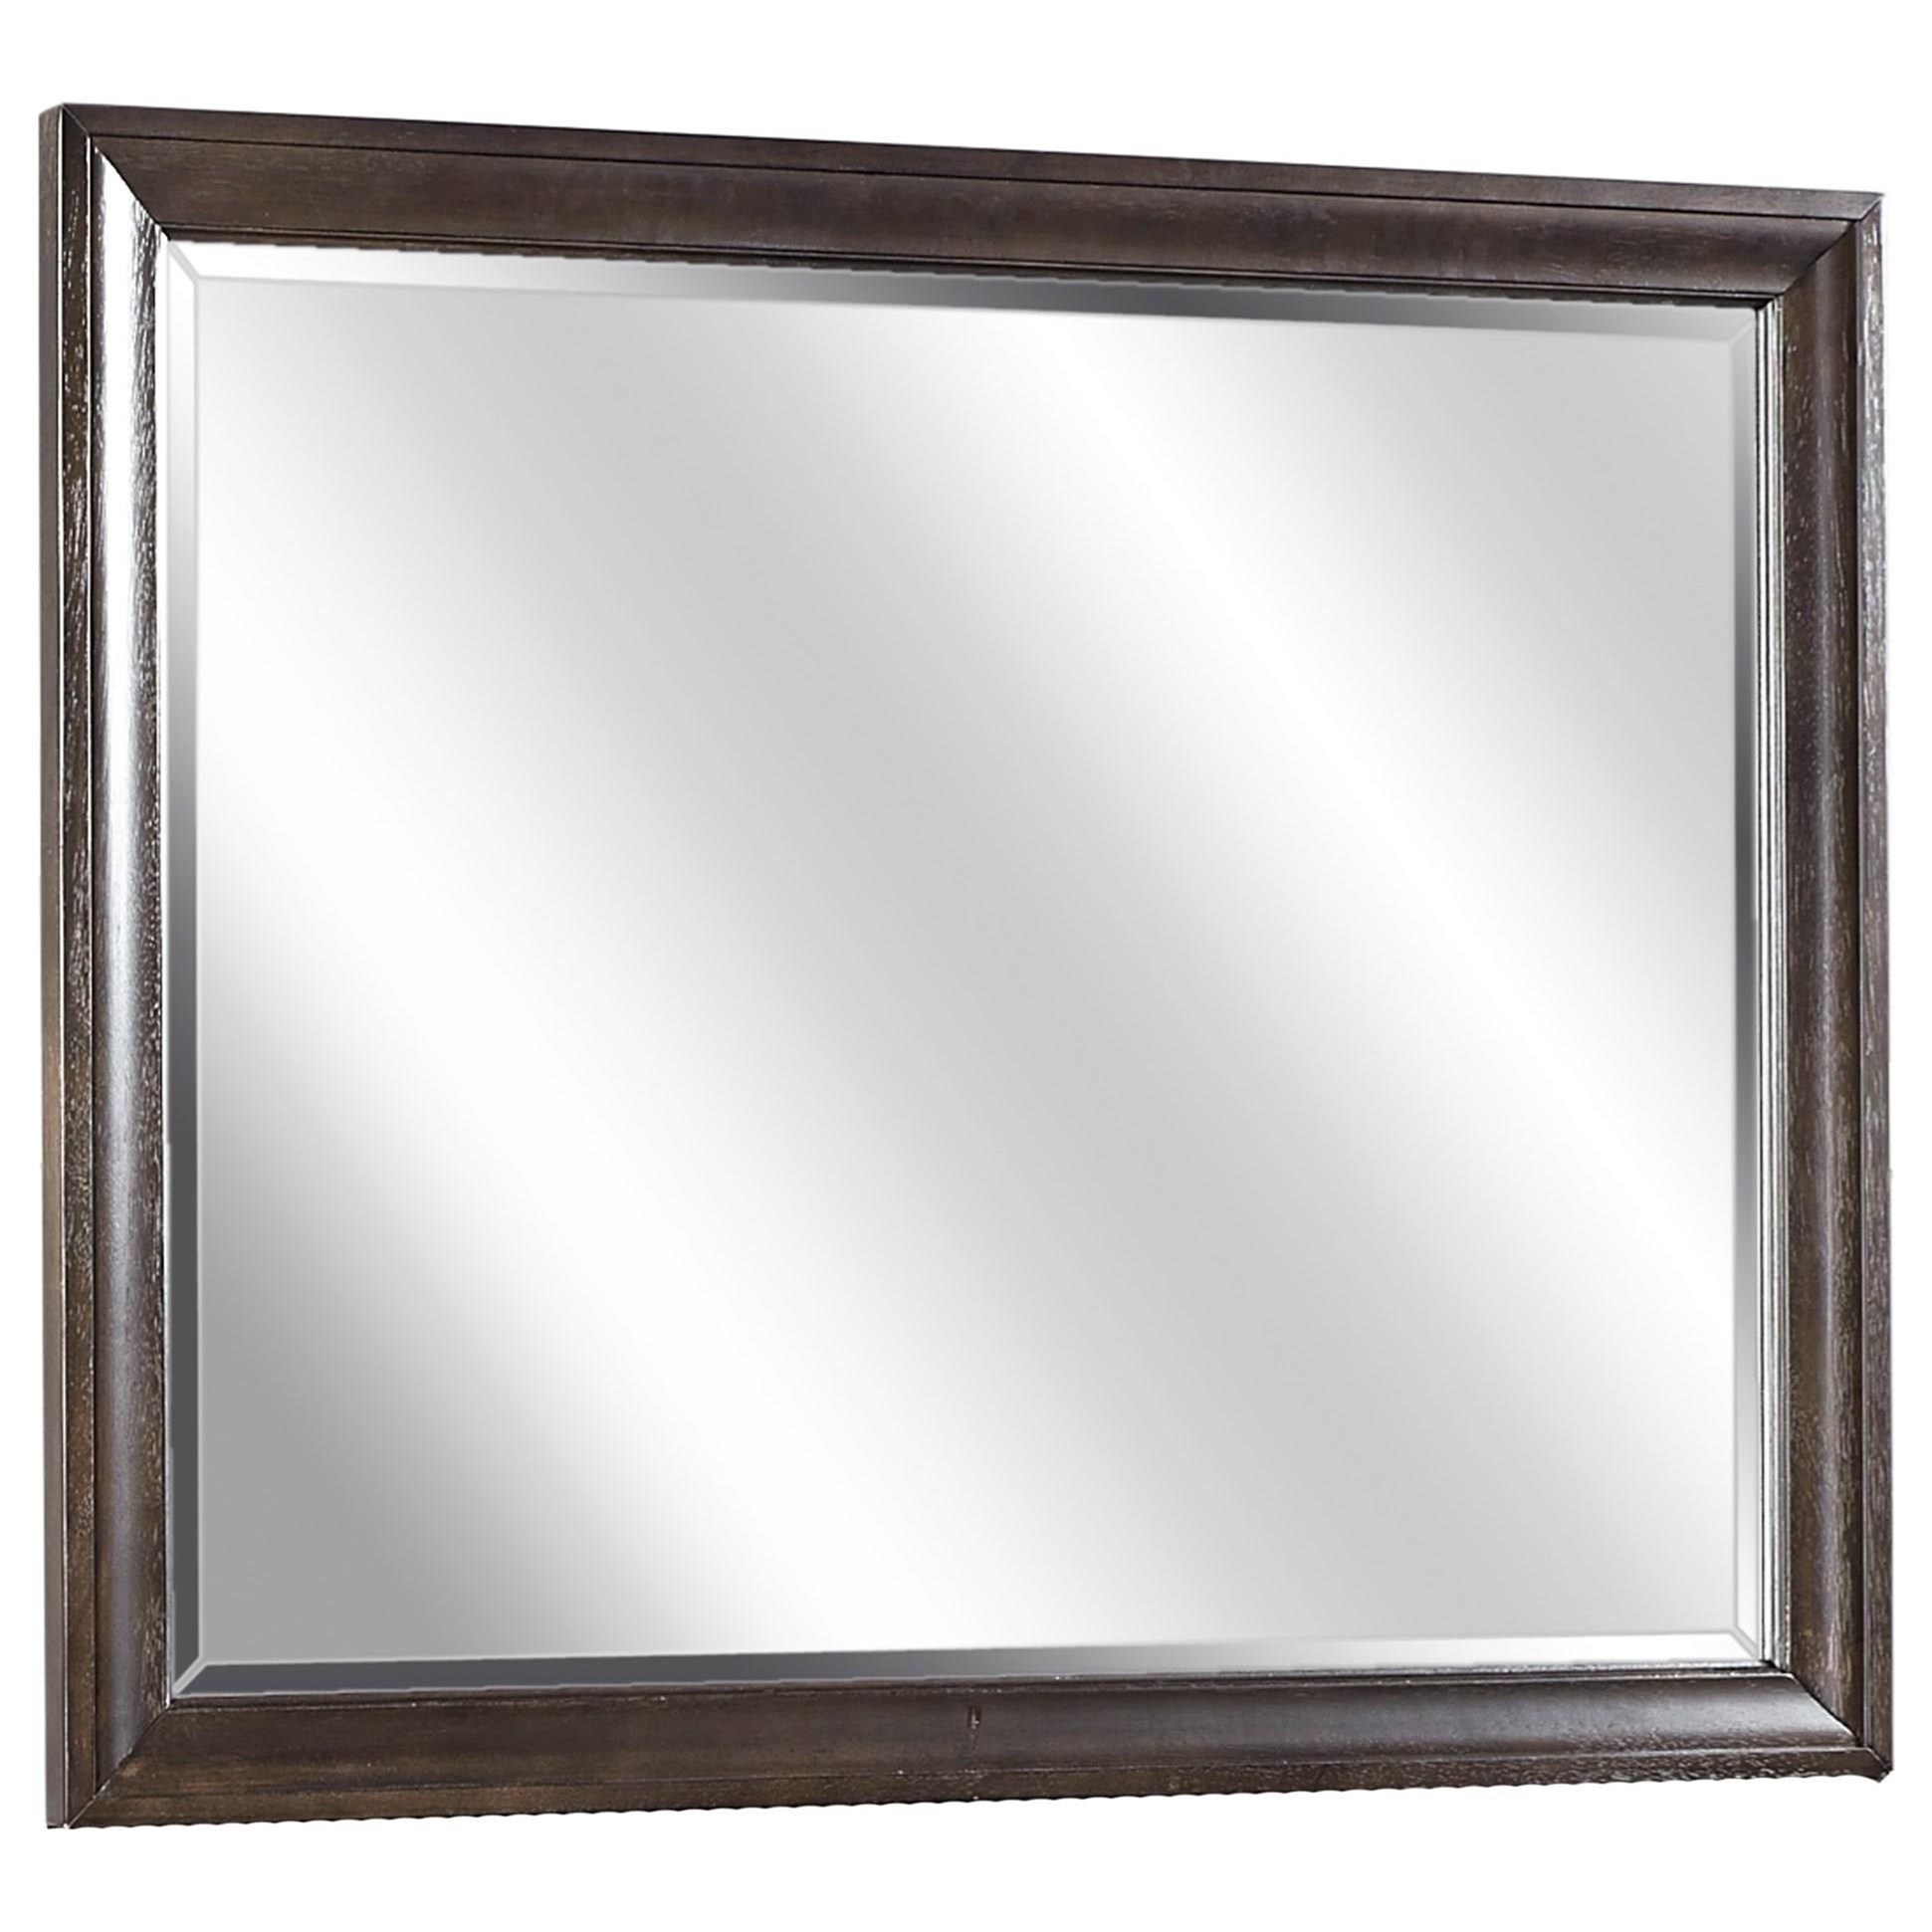 Front Street Landscape Mirror  by Aspenhome at Stoney Creek Furniture